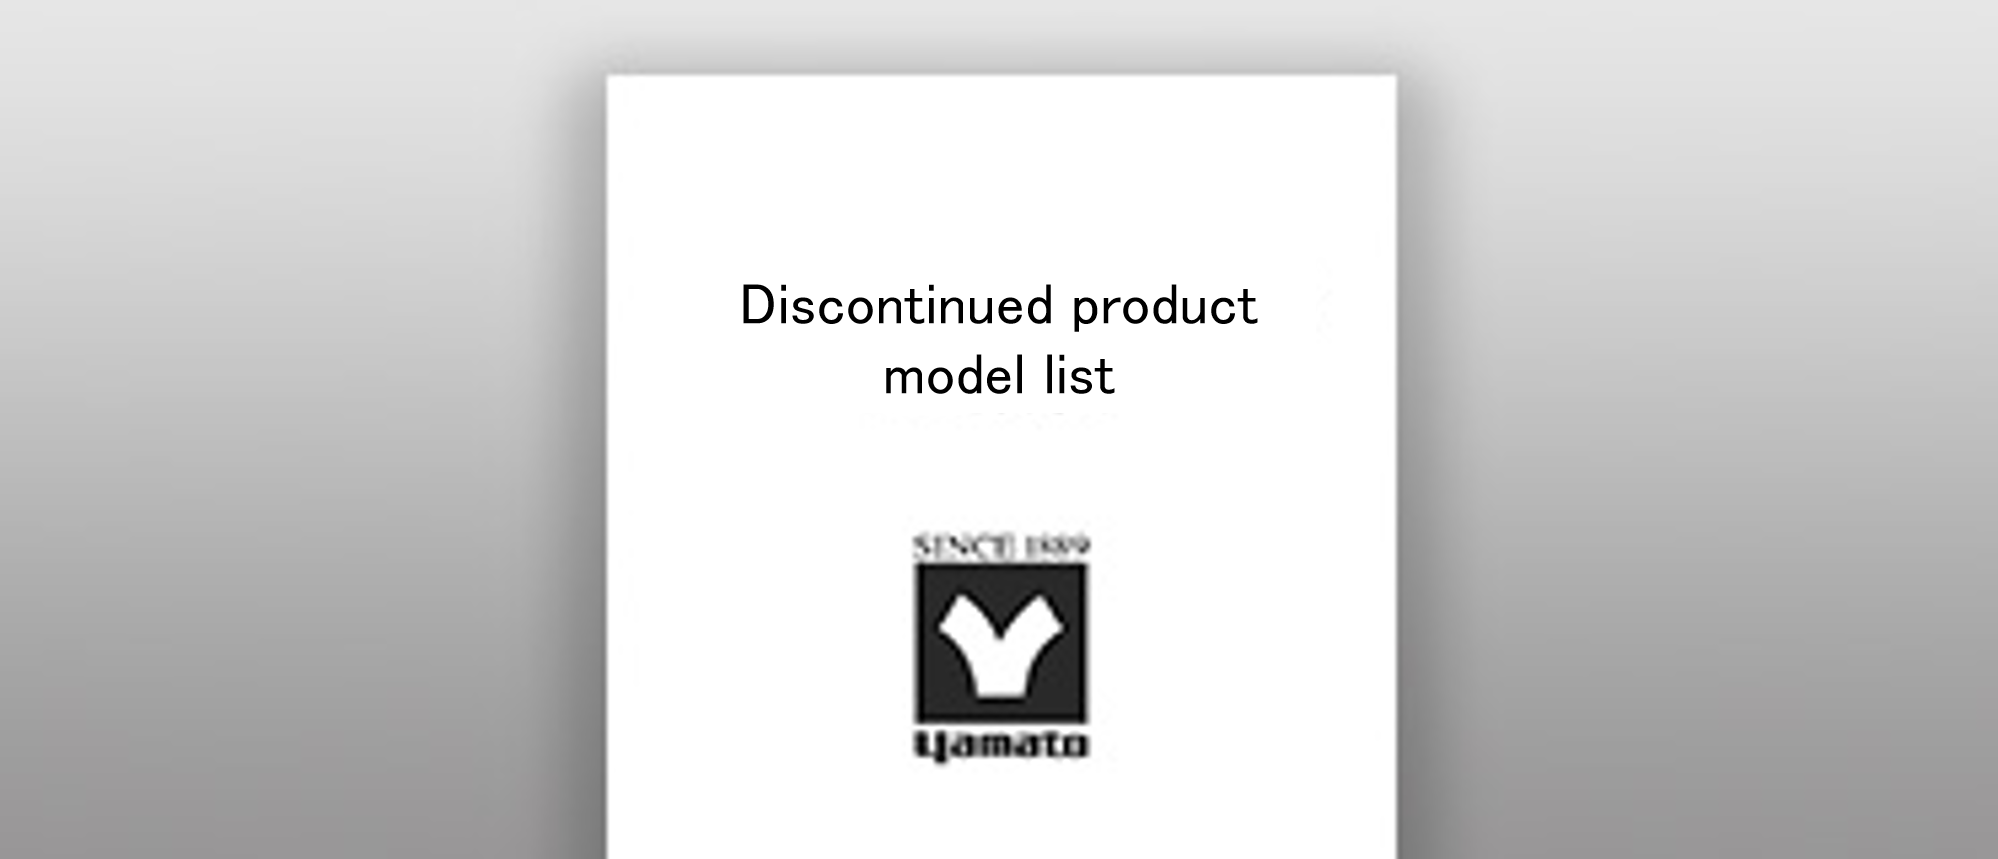 Discontinued product model list